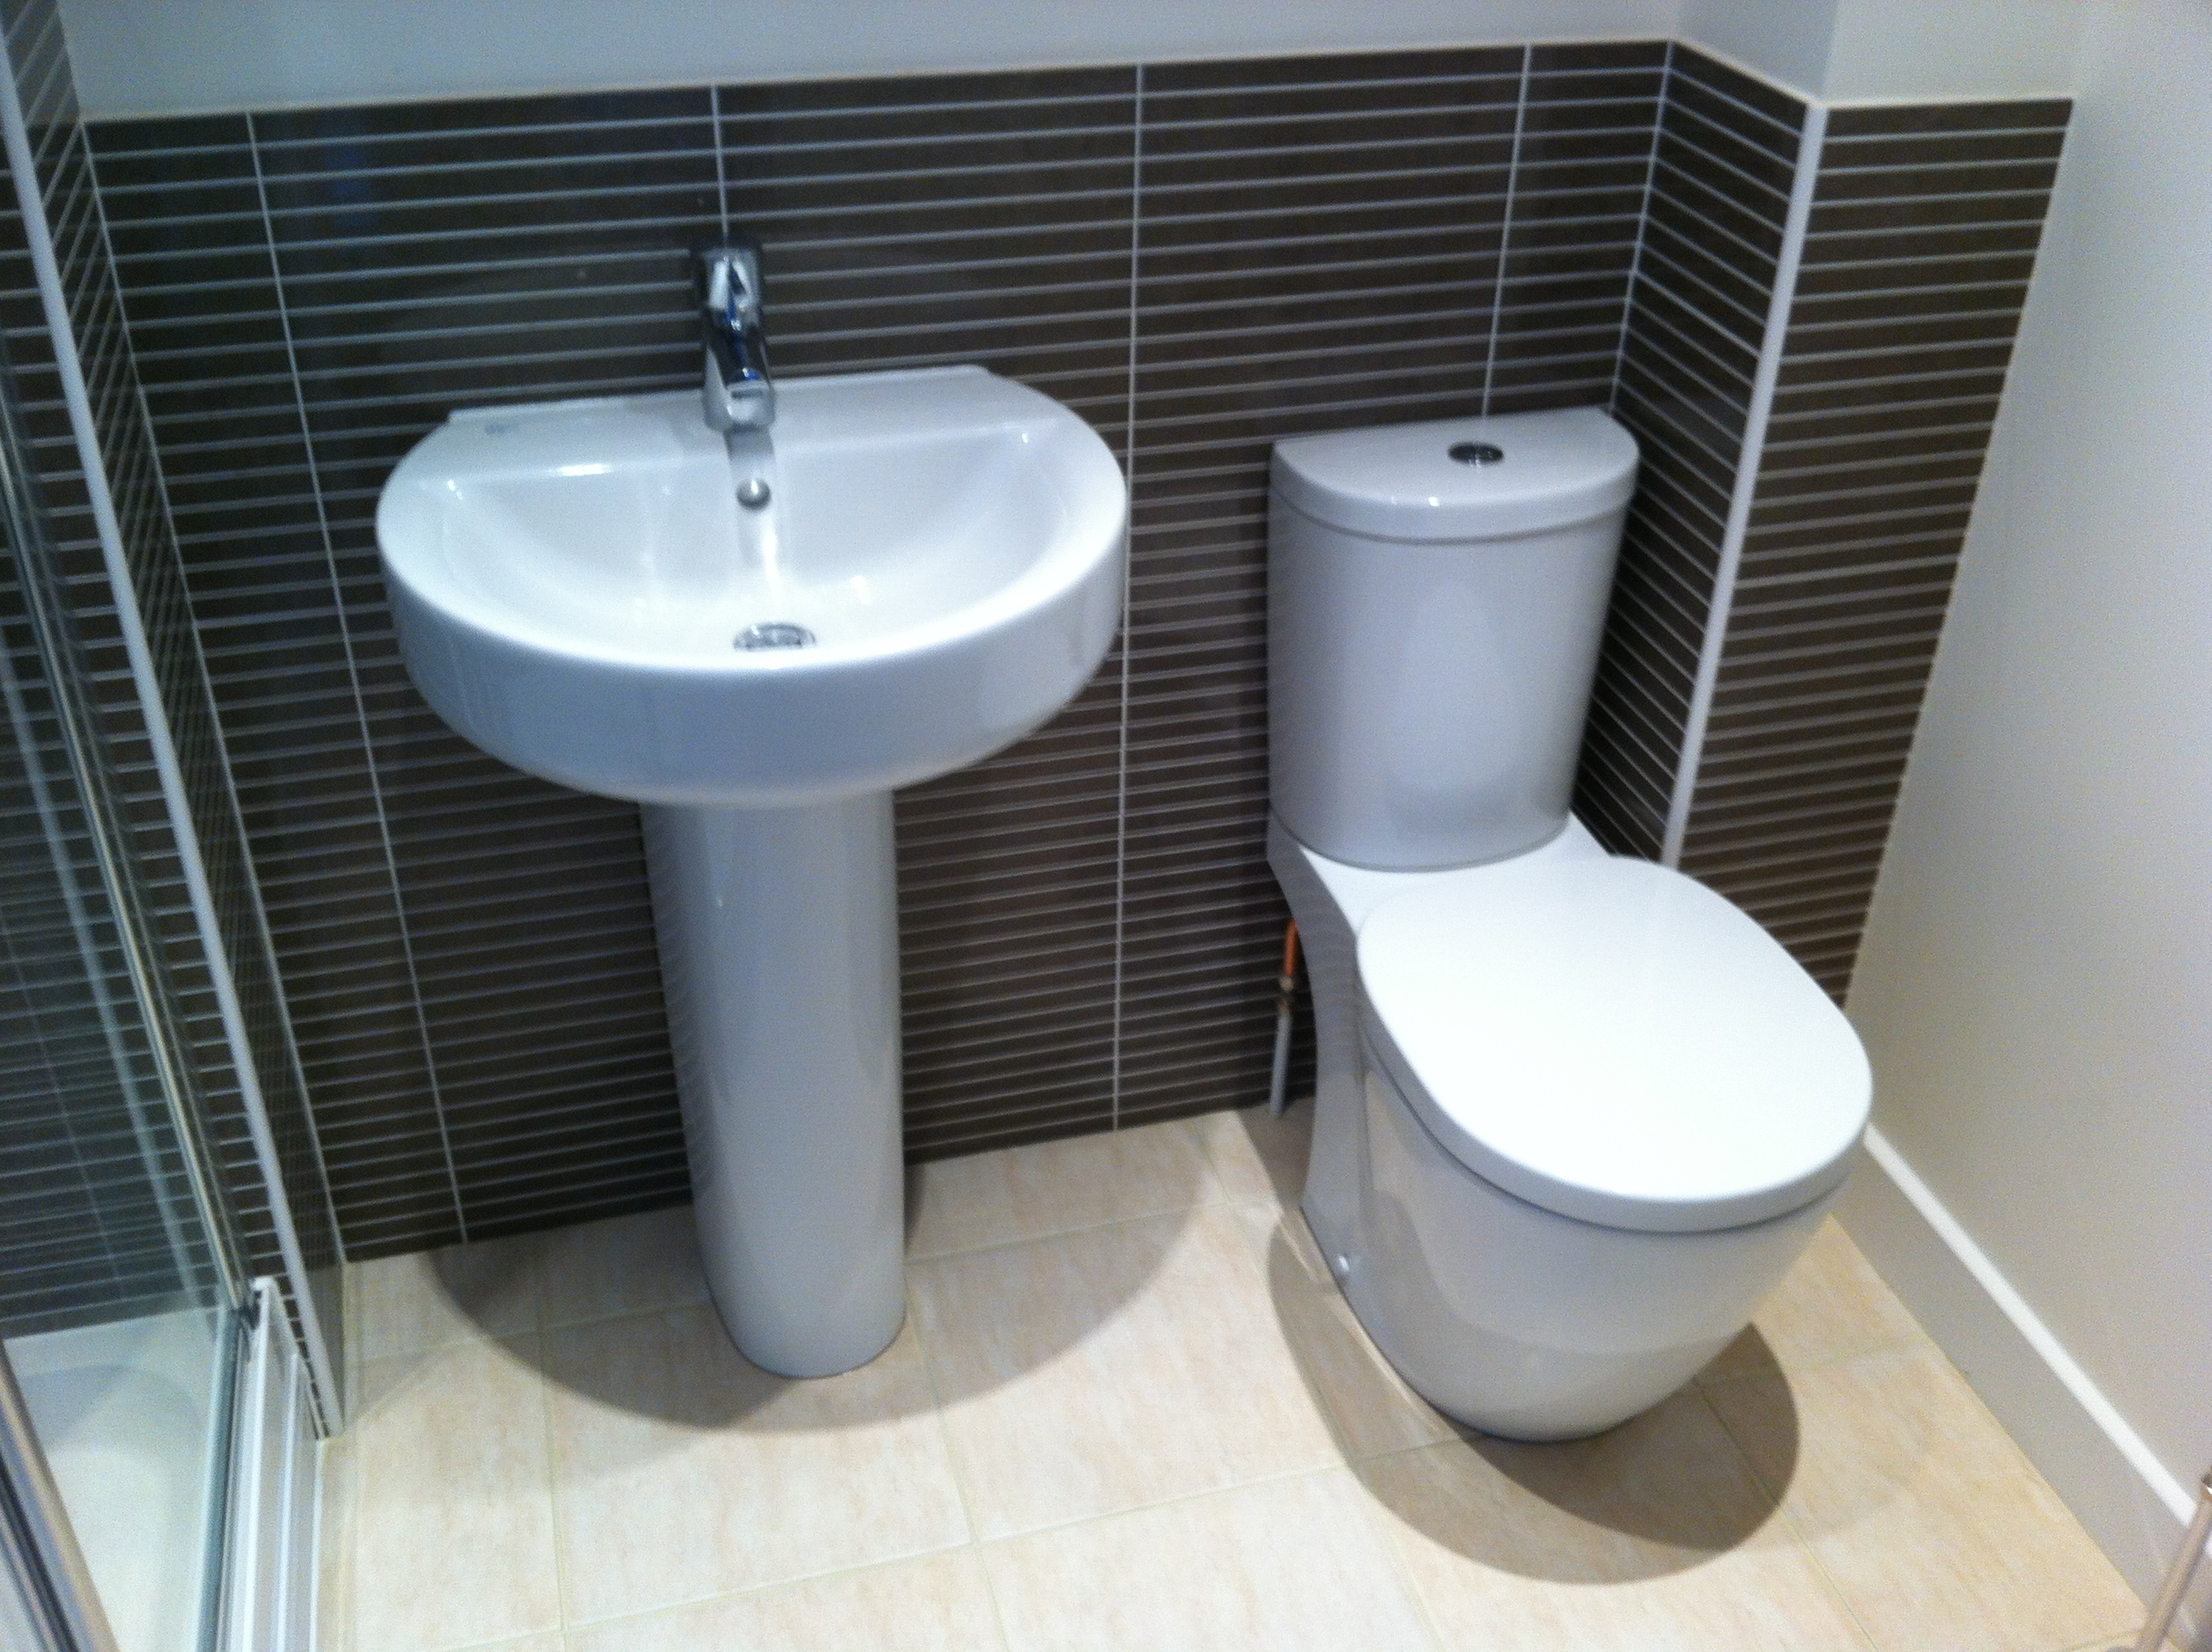 En-suite Toilet and Basin.